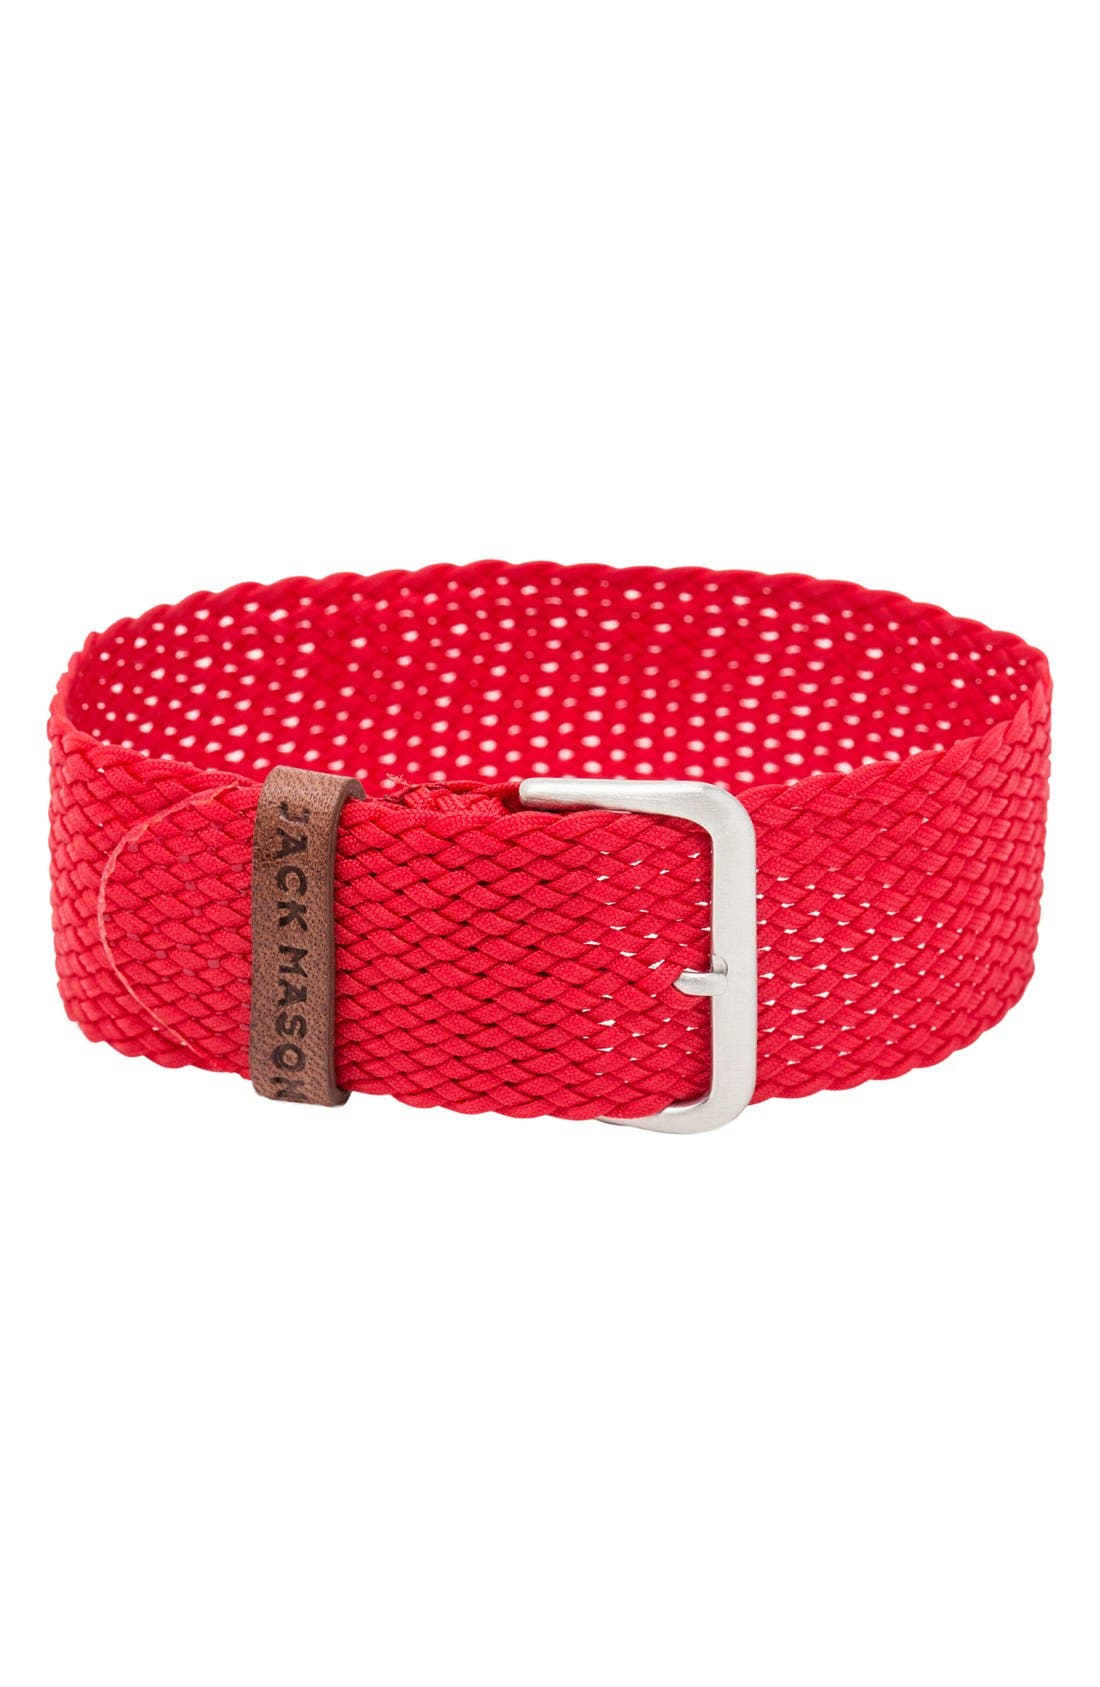 Nylon Strap with Leather Keeper, 22mm,                             Alternate thumbnail 2, color,                             600